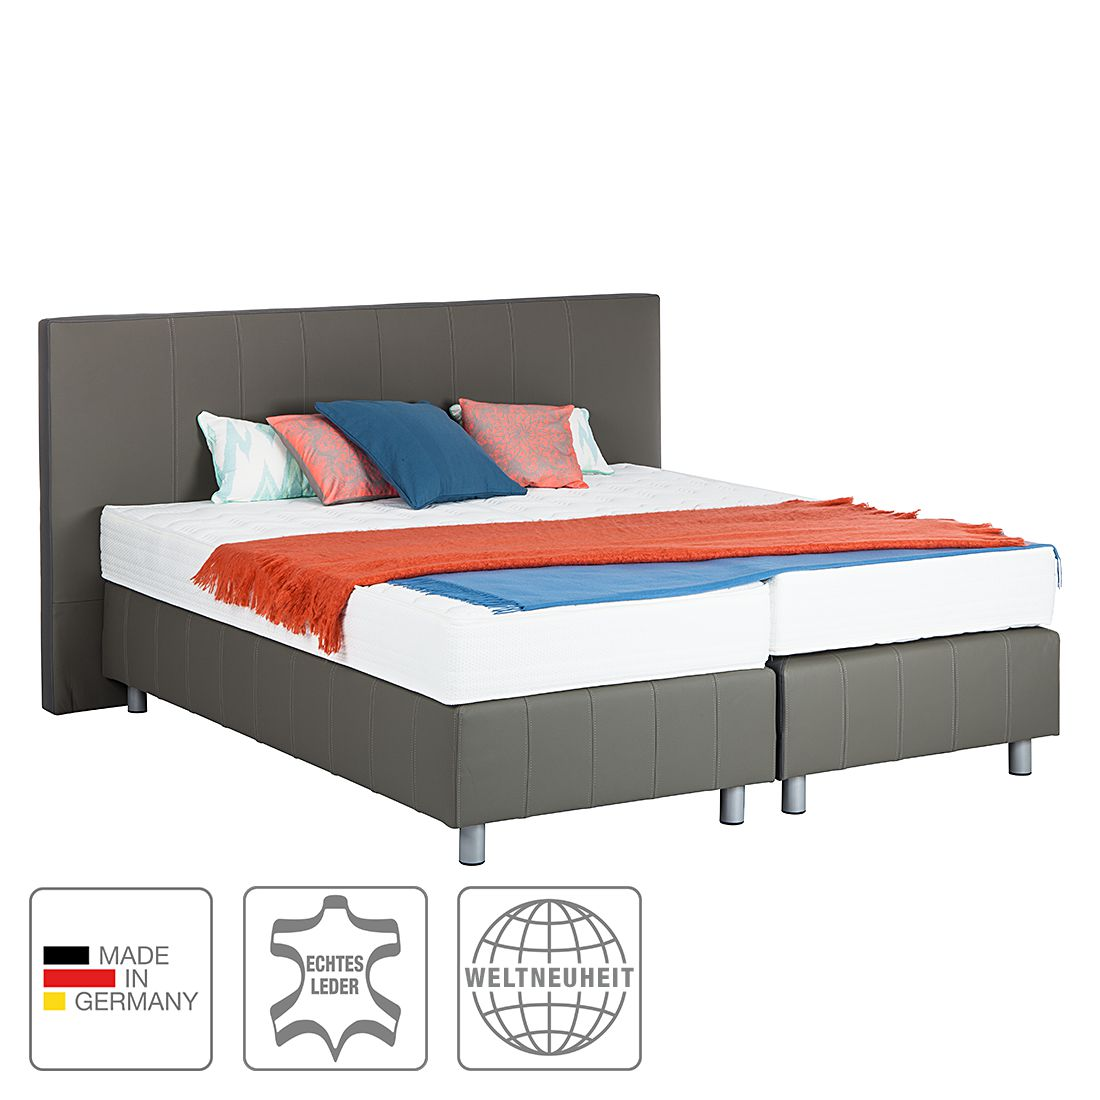 boxspringbett atlanta echtleder ohne topper 200 x 200cm h2 bis 80 kg grau art of. Black Bedroom Furniture Sets. Home Design Ideas